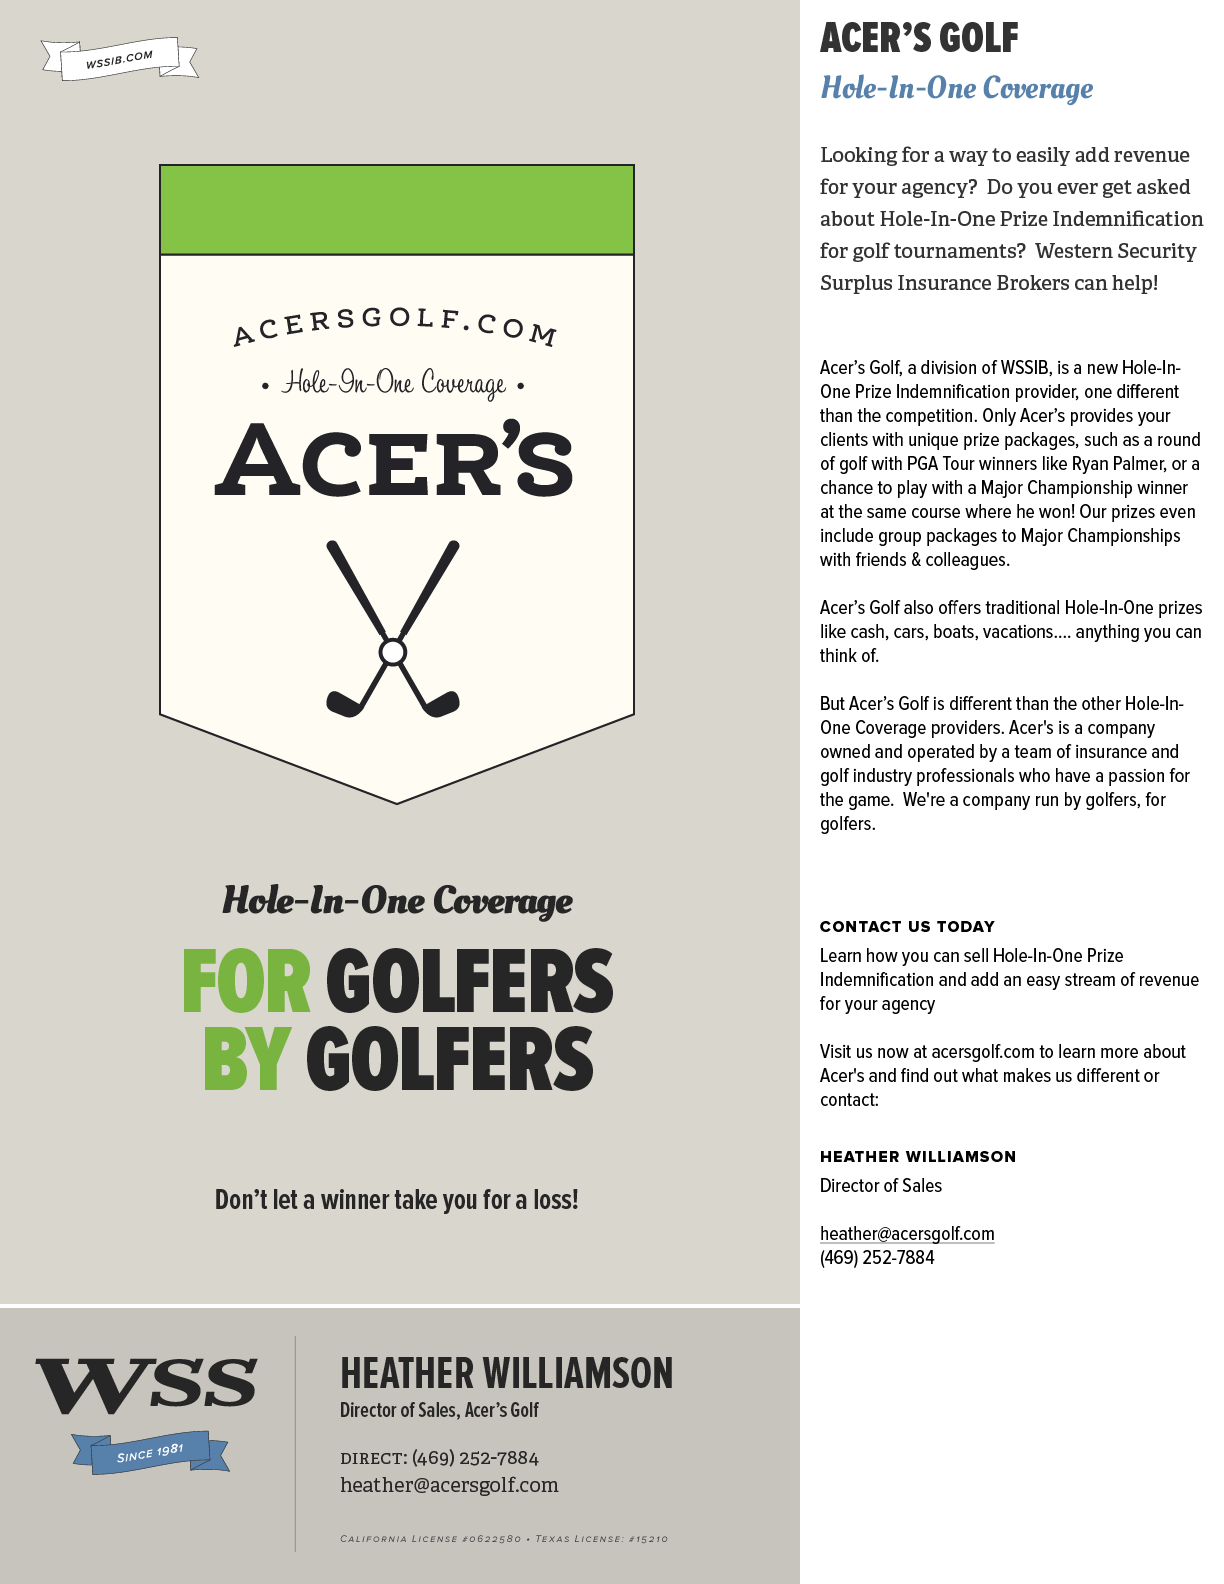 WSS-Flyer-Acers.png